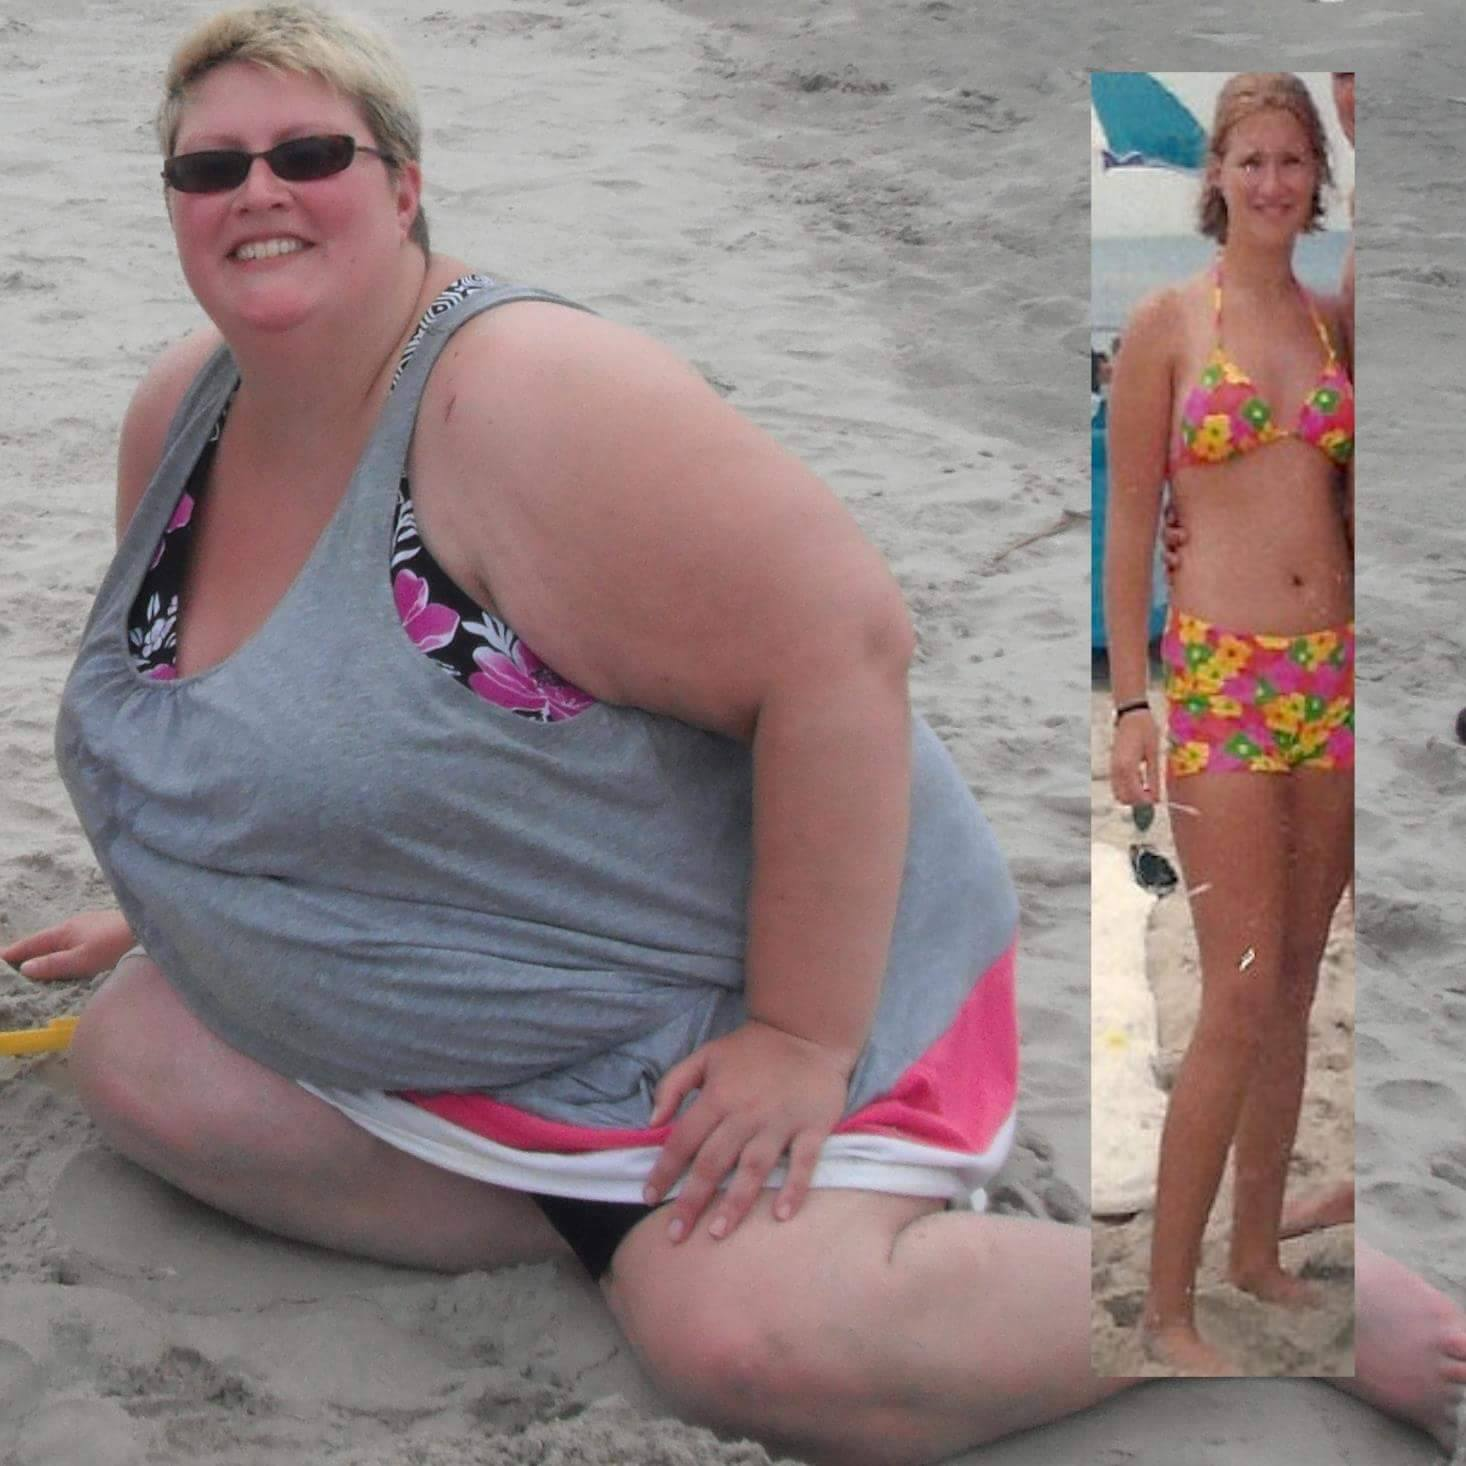 Just to give a comparison. Bikini H.S. body vs. A couple of years ago when all my Cushing's weight came back